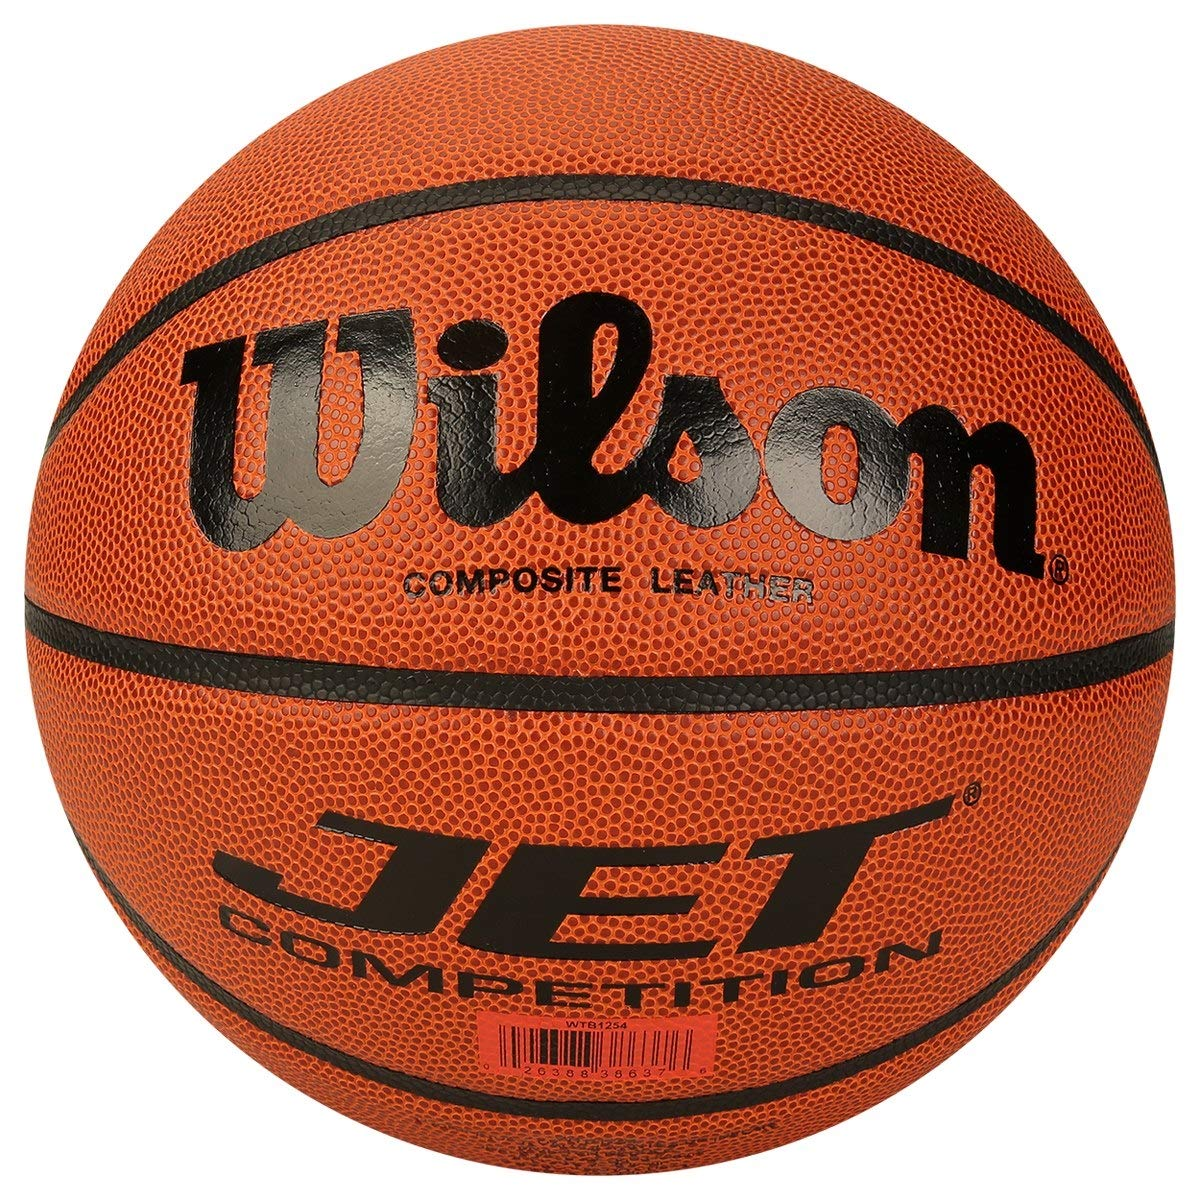 8a0faa1a318 Amazon.com : Wilson Jet Competition Basketball : Sports & Outdoors